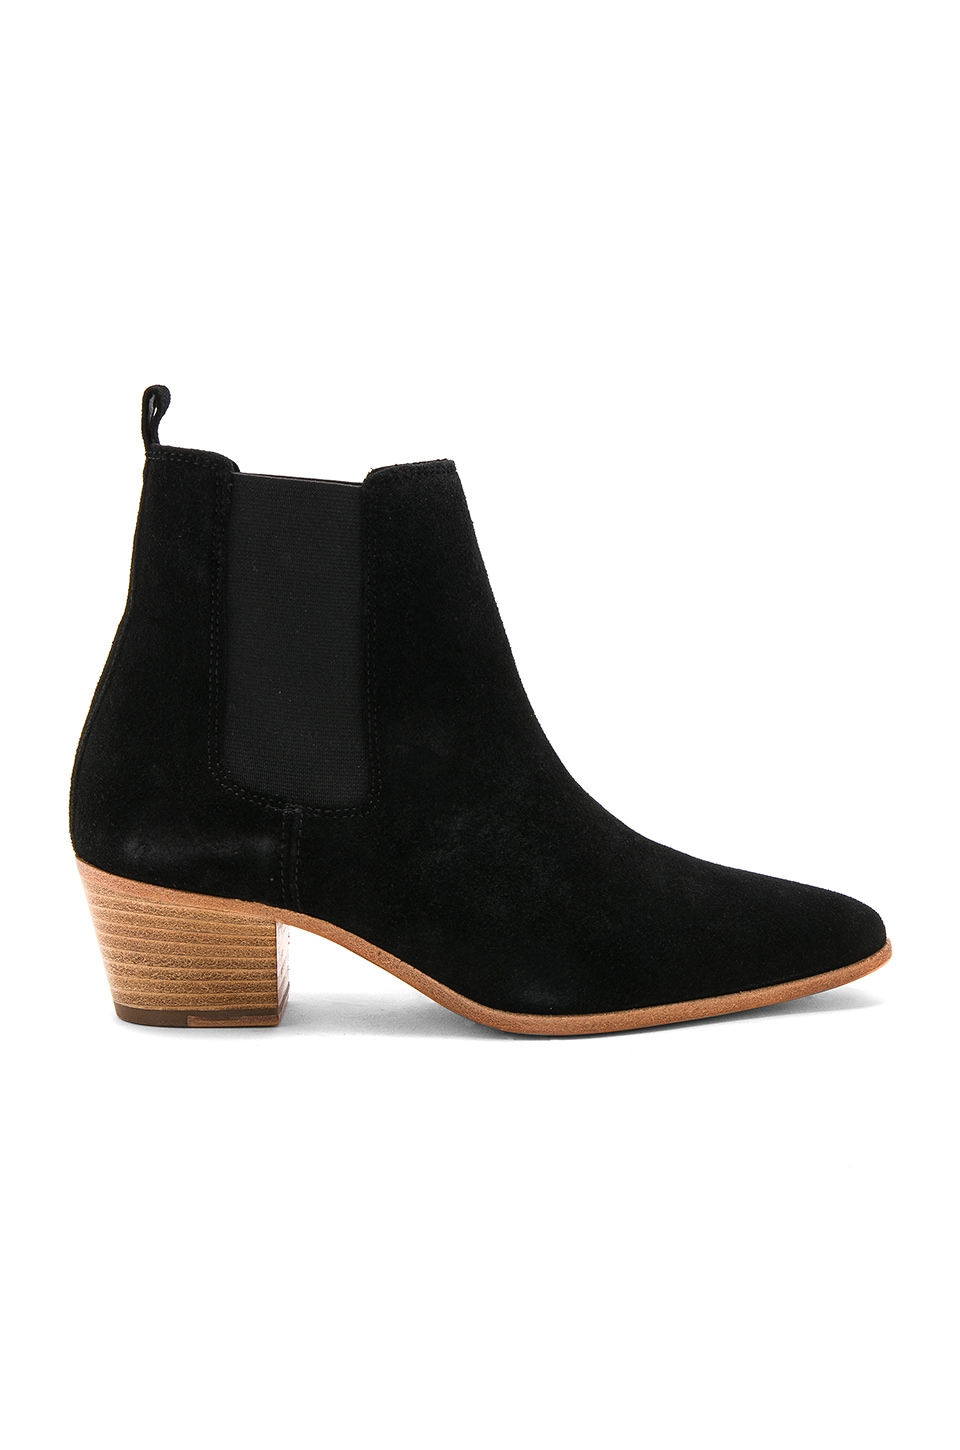 IRO Yvette Booties in Black